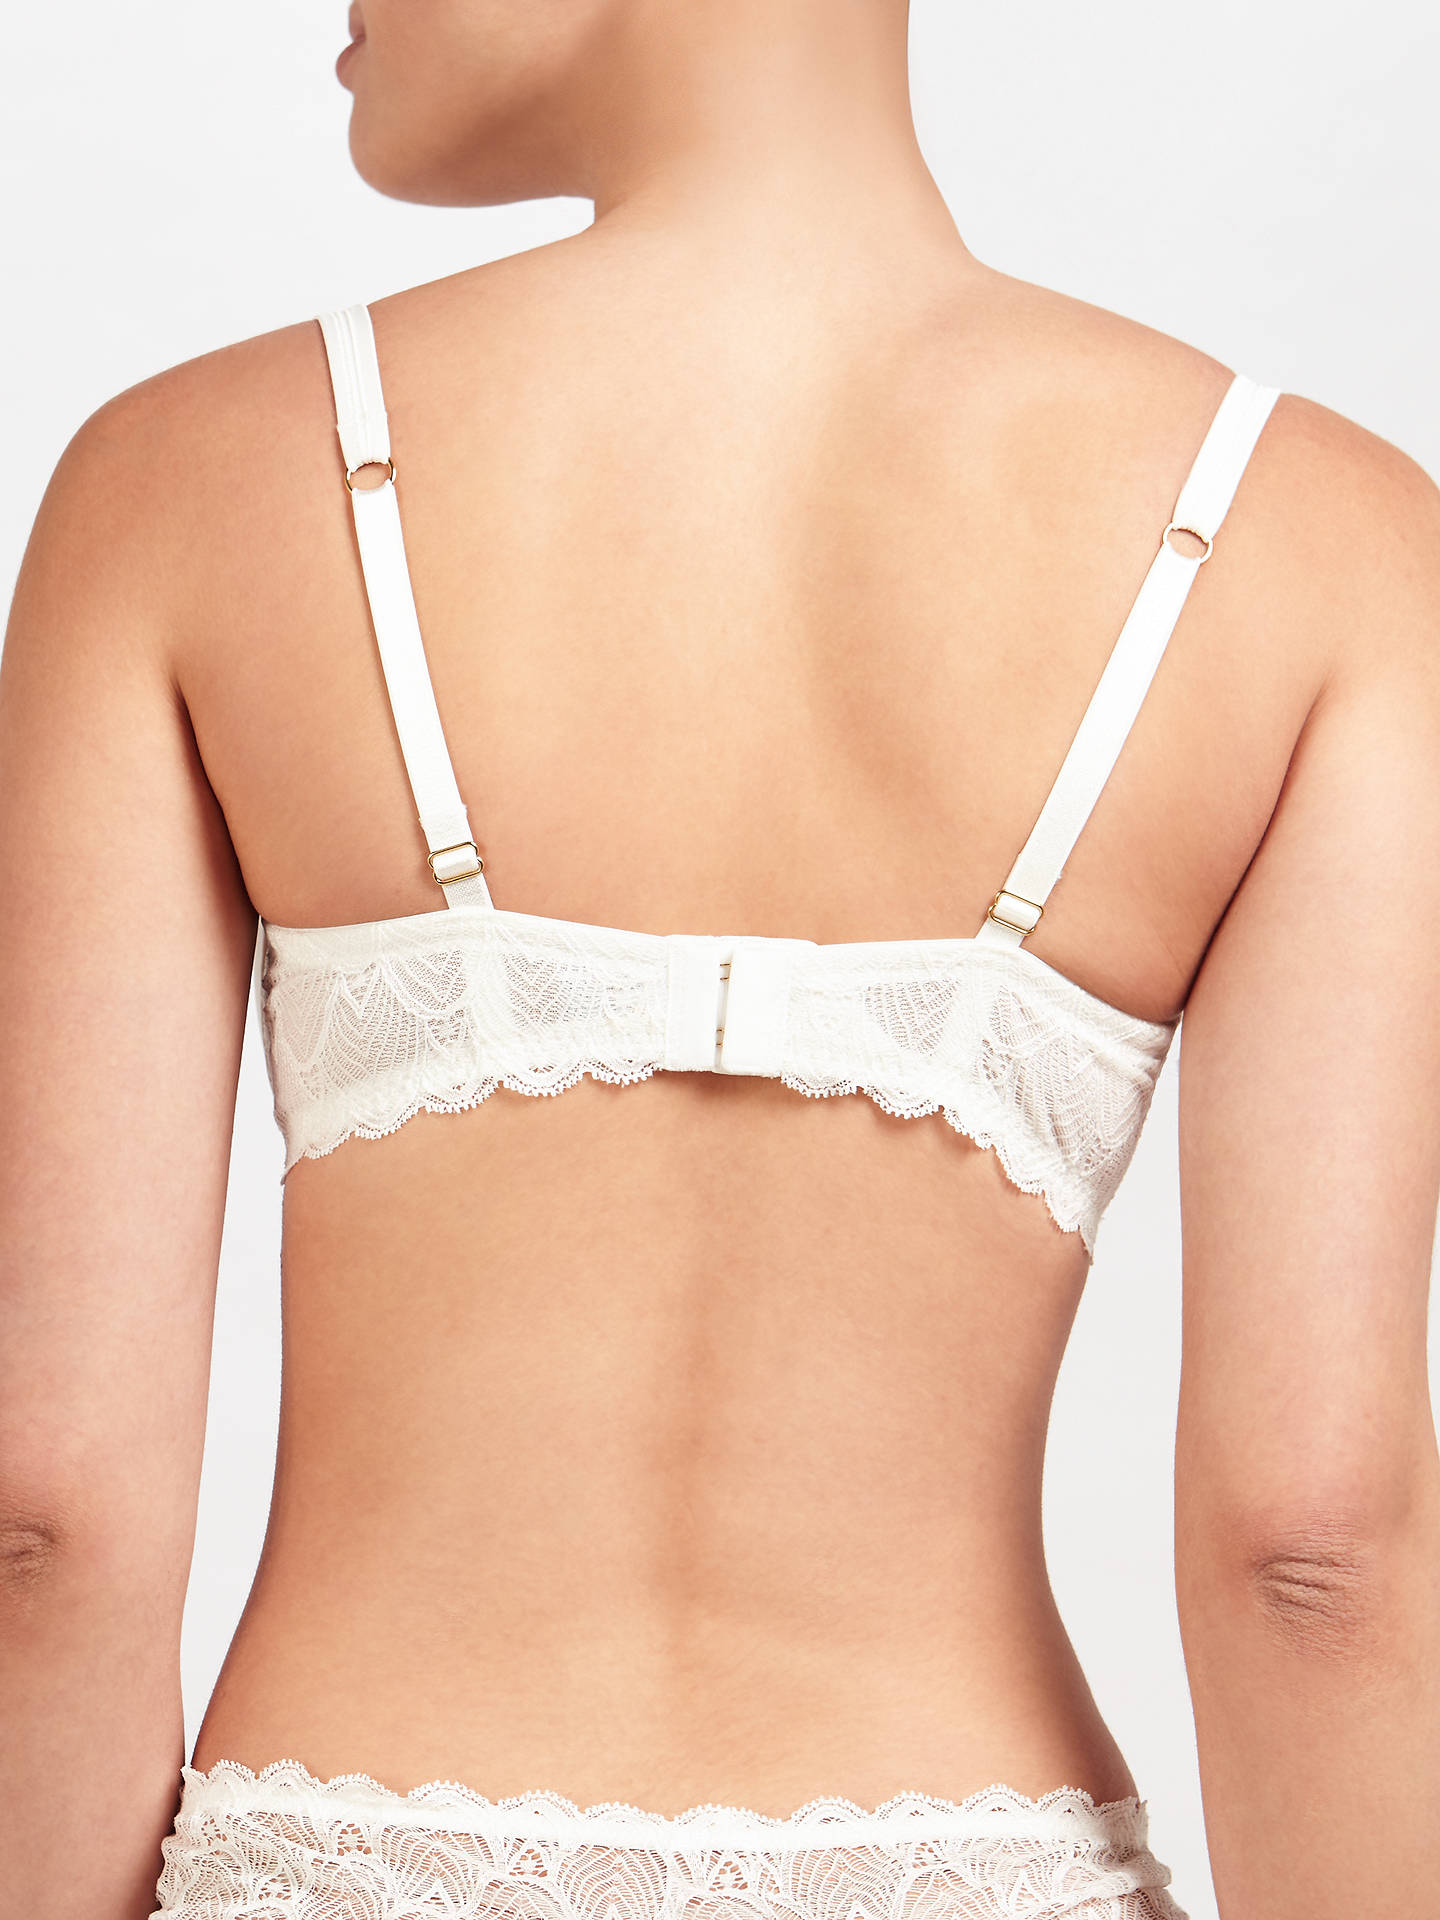 BuyJohn Lewis Eleanor T-Shirt Bra, Ivory, 30D Online at johnlewis.com